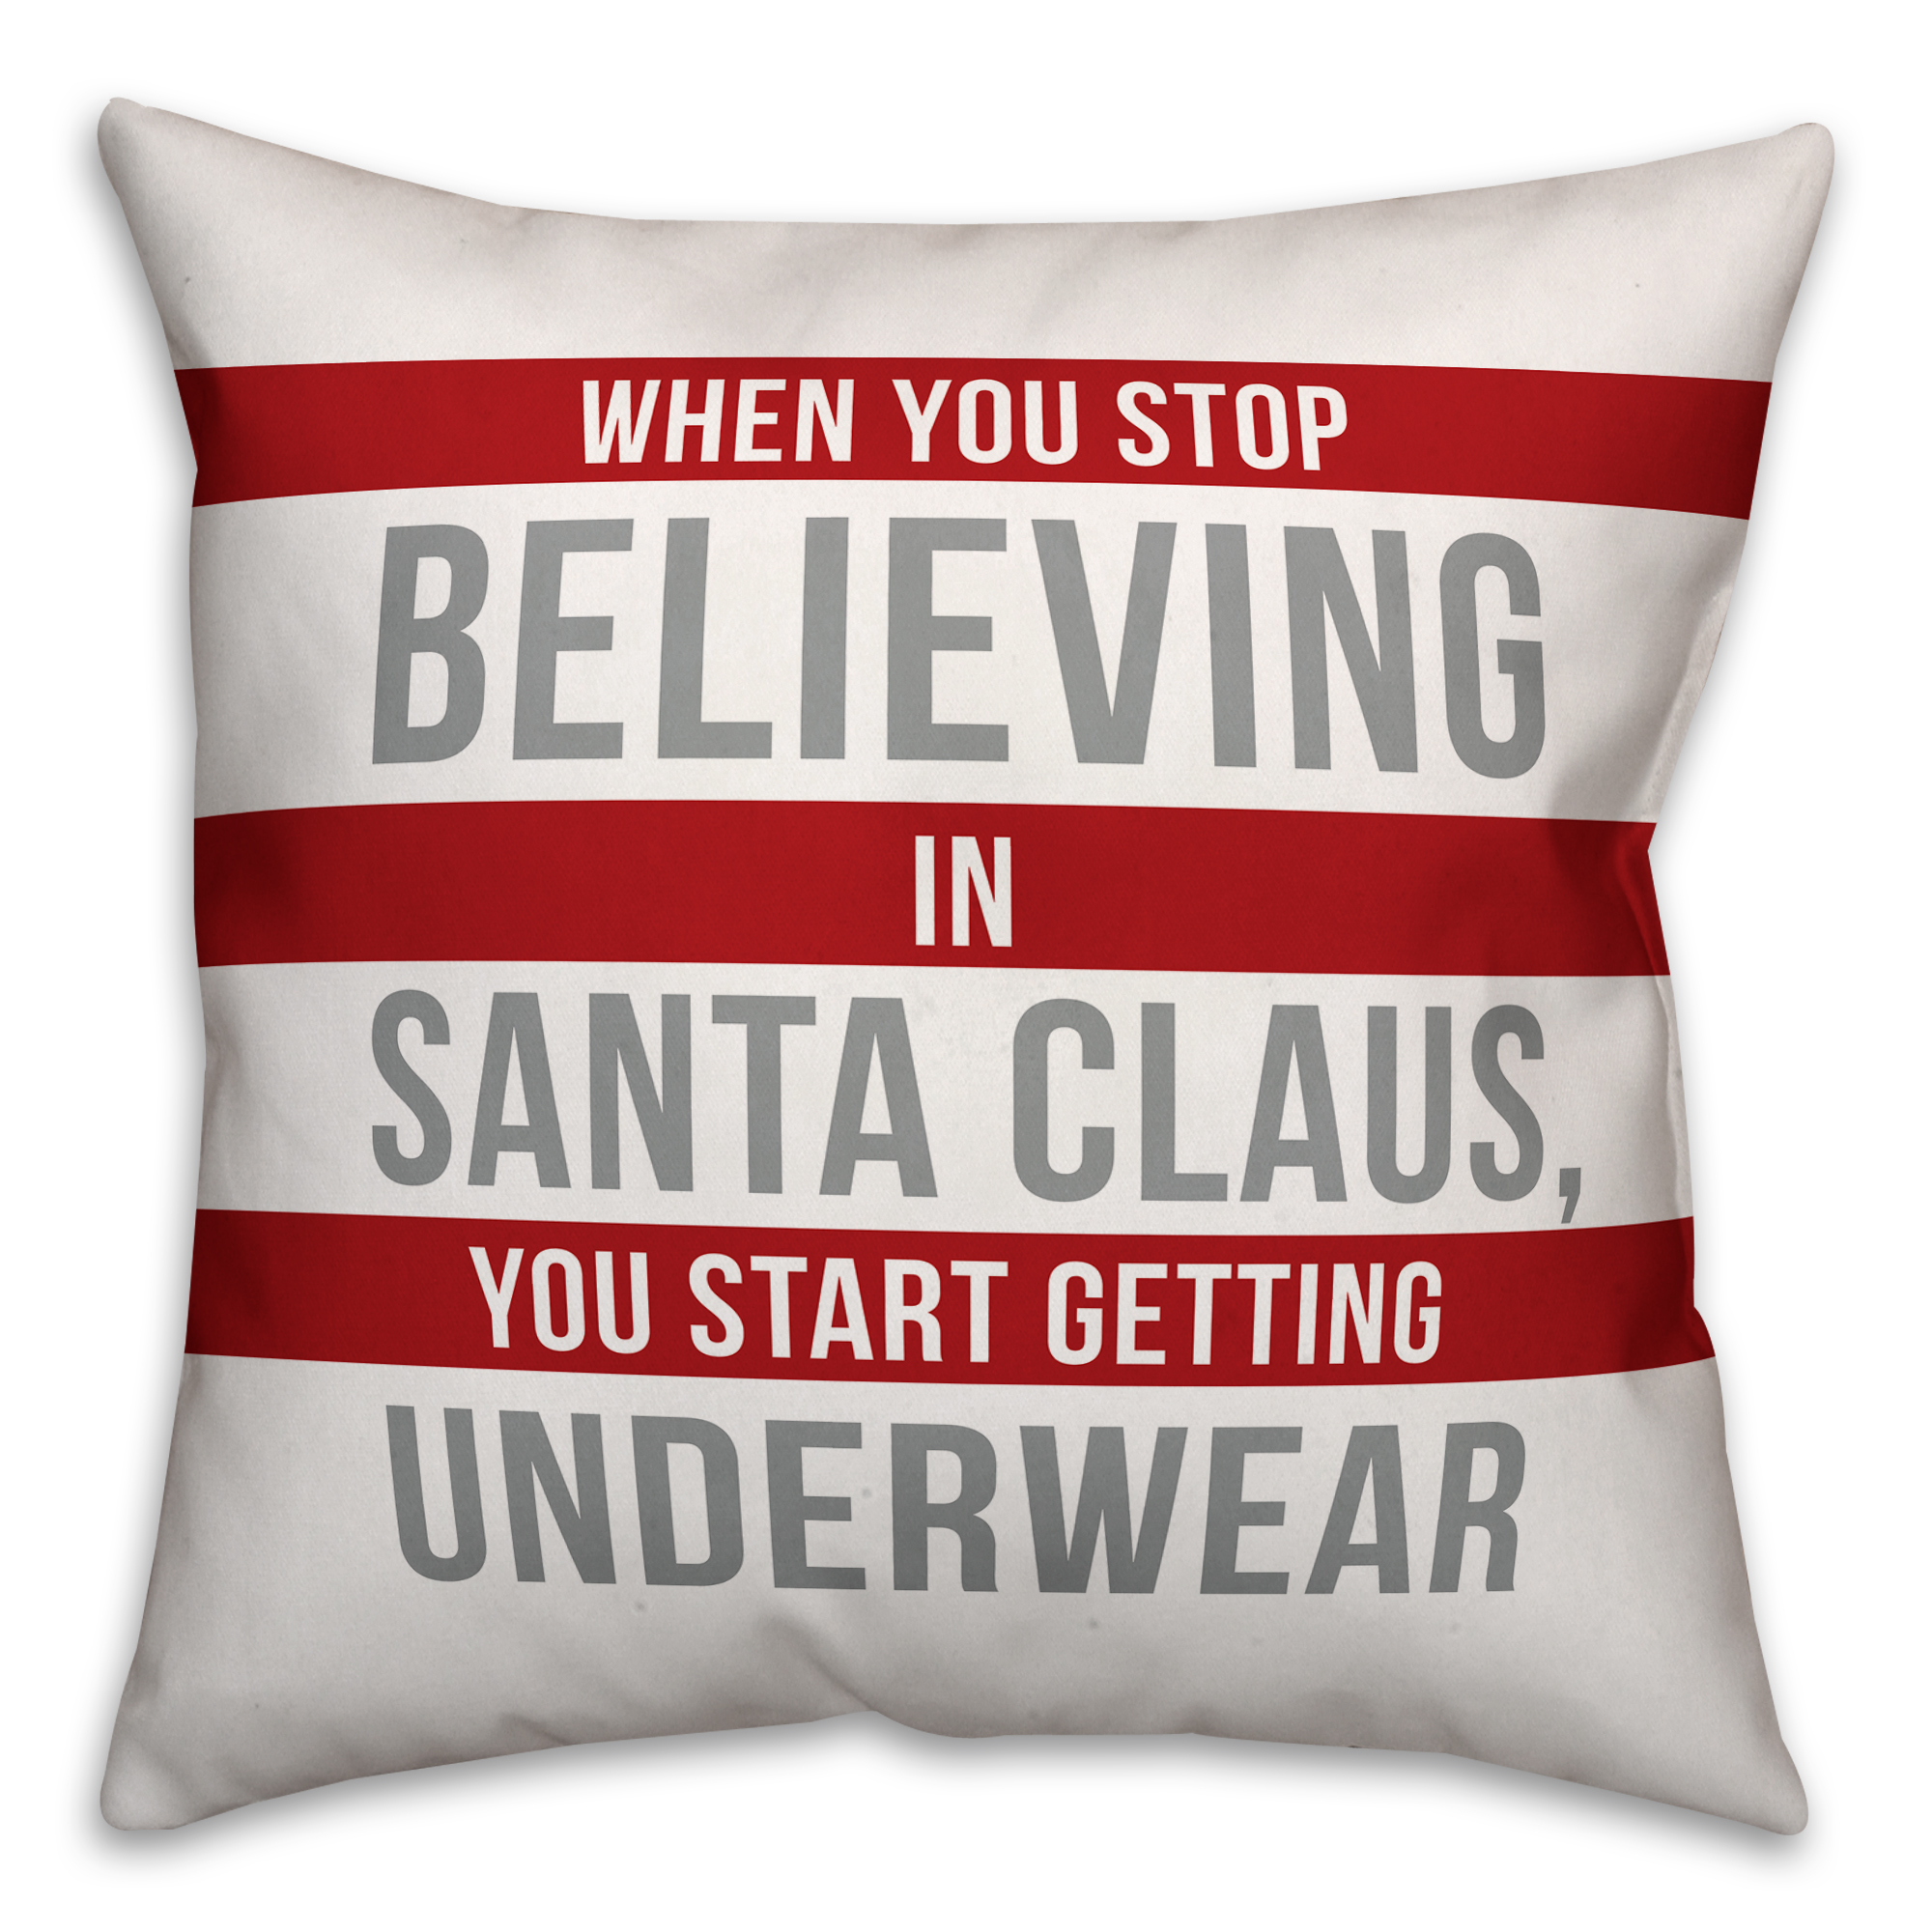 Don't Stop Believing in Santa Claus 20x20 Spun Poly Pillow